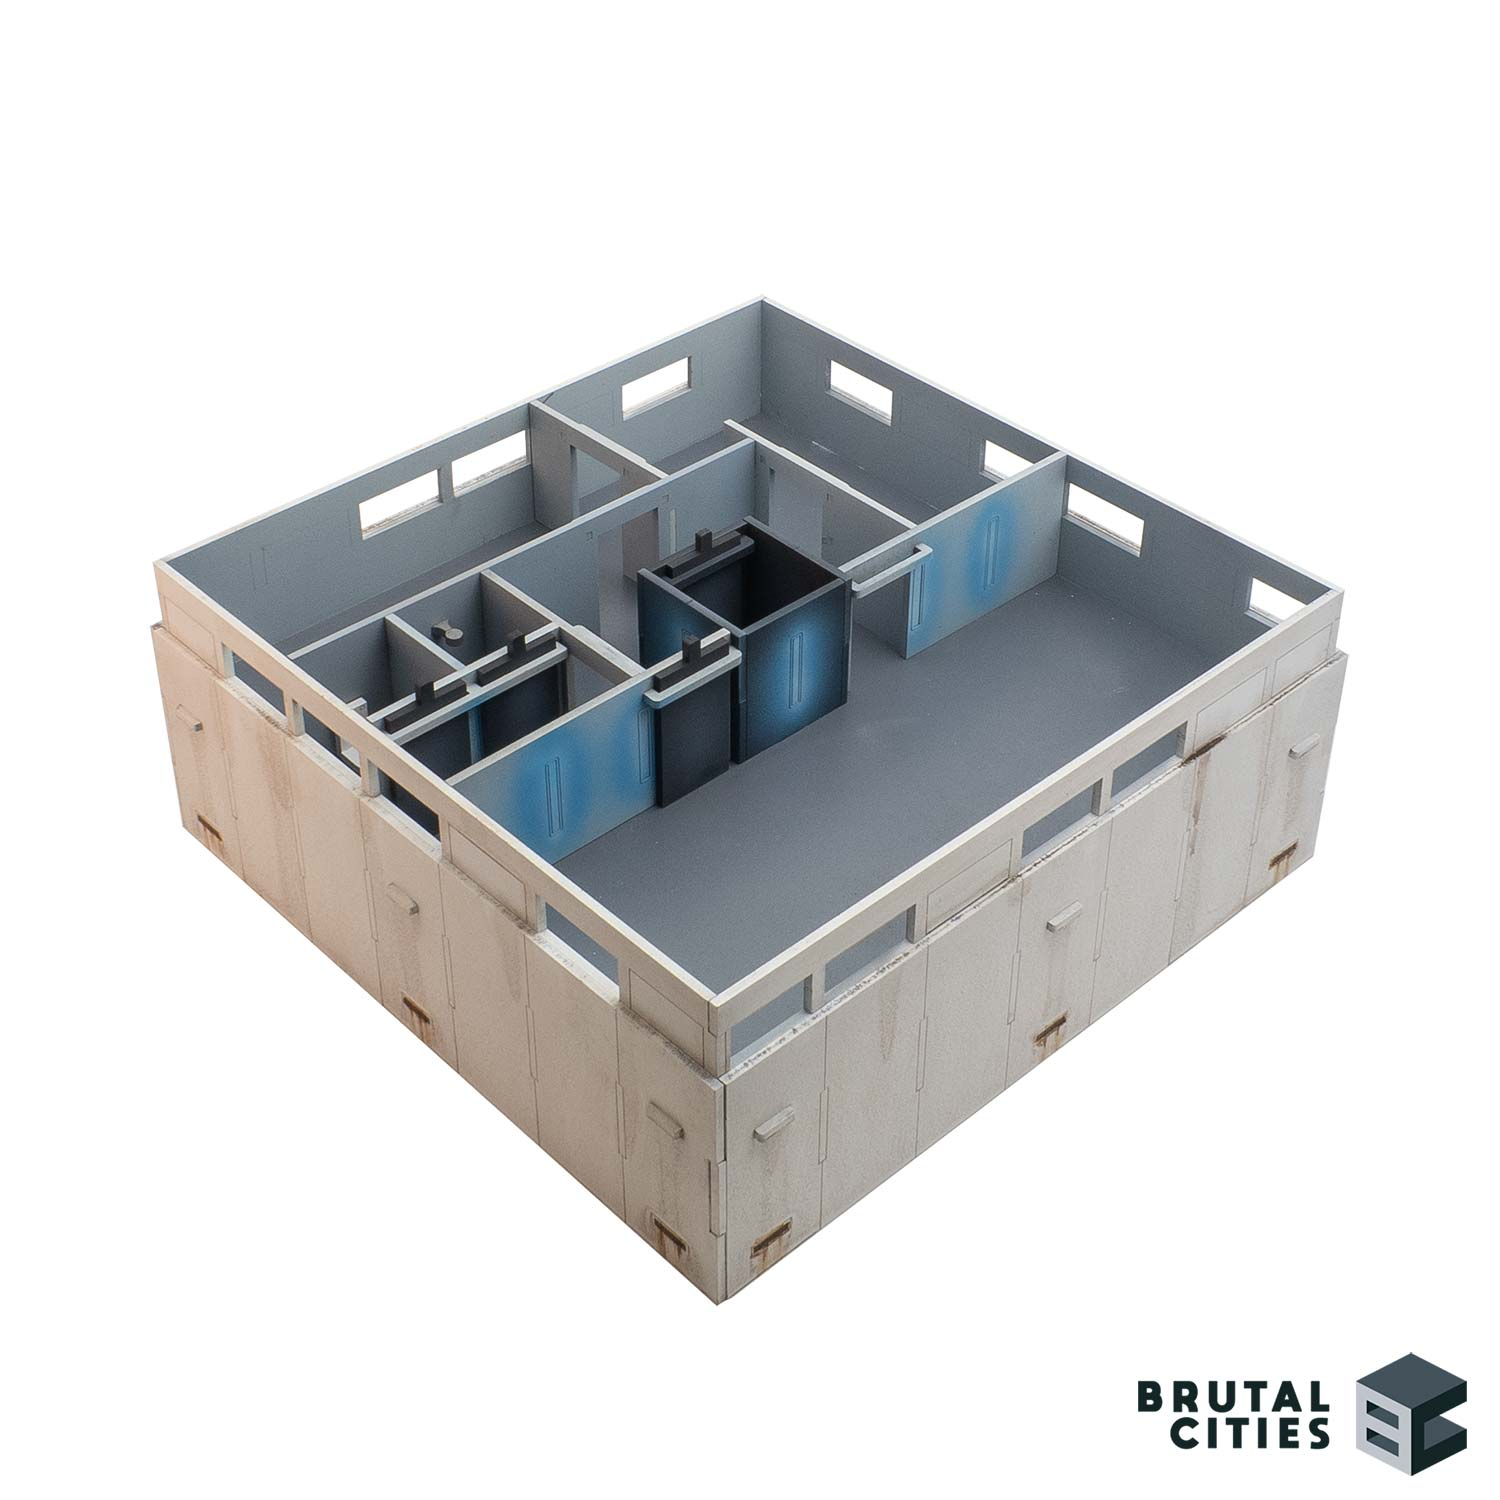 Interior wall terrain for wargaming